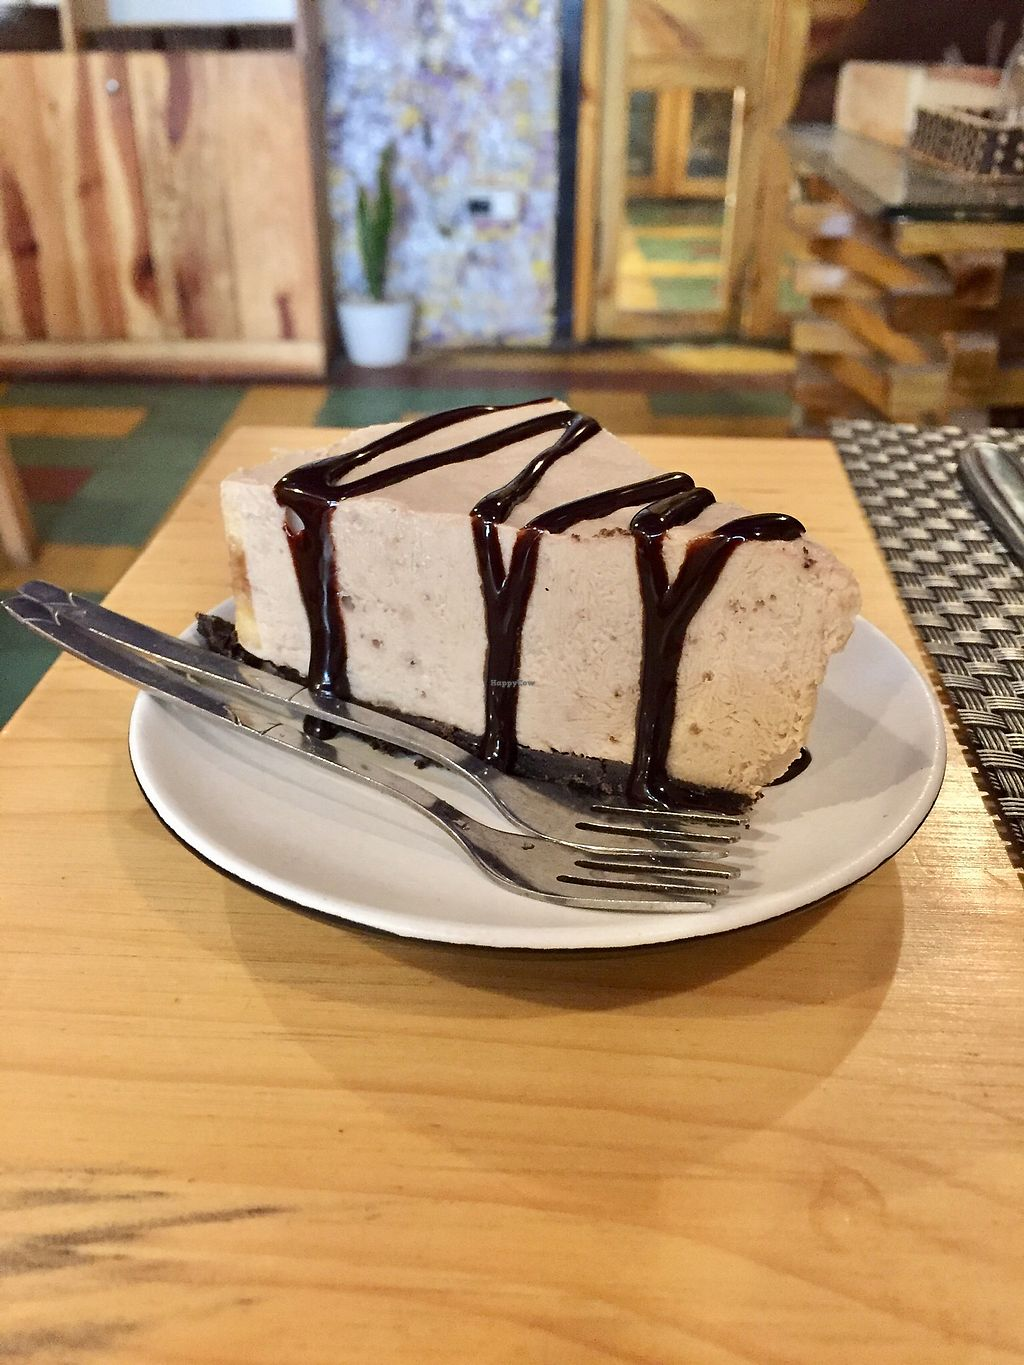 """Photo of Jalus   by <a href=""""/members/profile/kars10"""">kars10</a> <br/>Banana peanut butter chocolate 'cheese cake' <br/> February 2, 2018  - <a href='/contact/abuse/image/66258/353969'>Report</a>"""